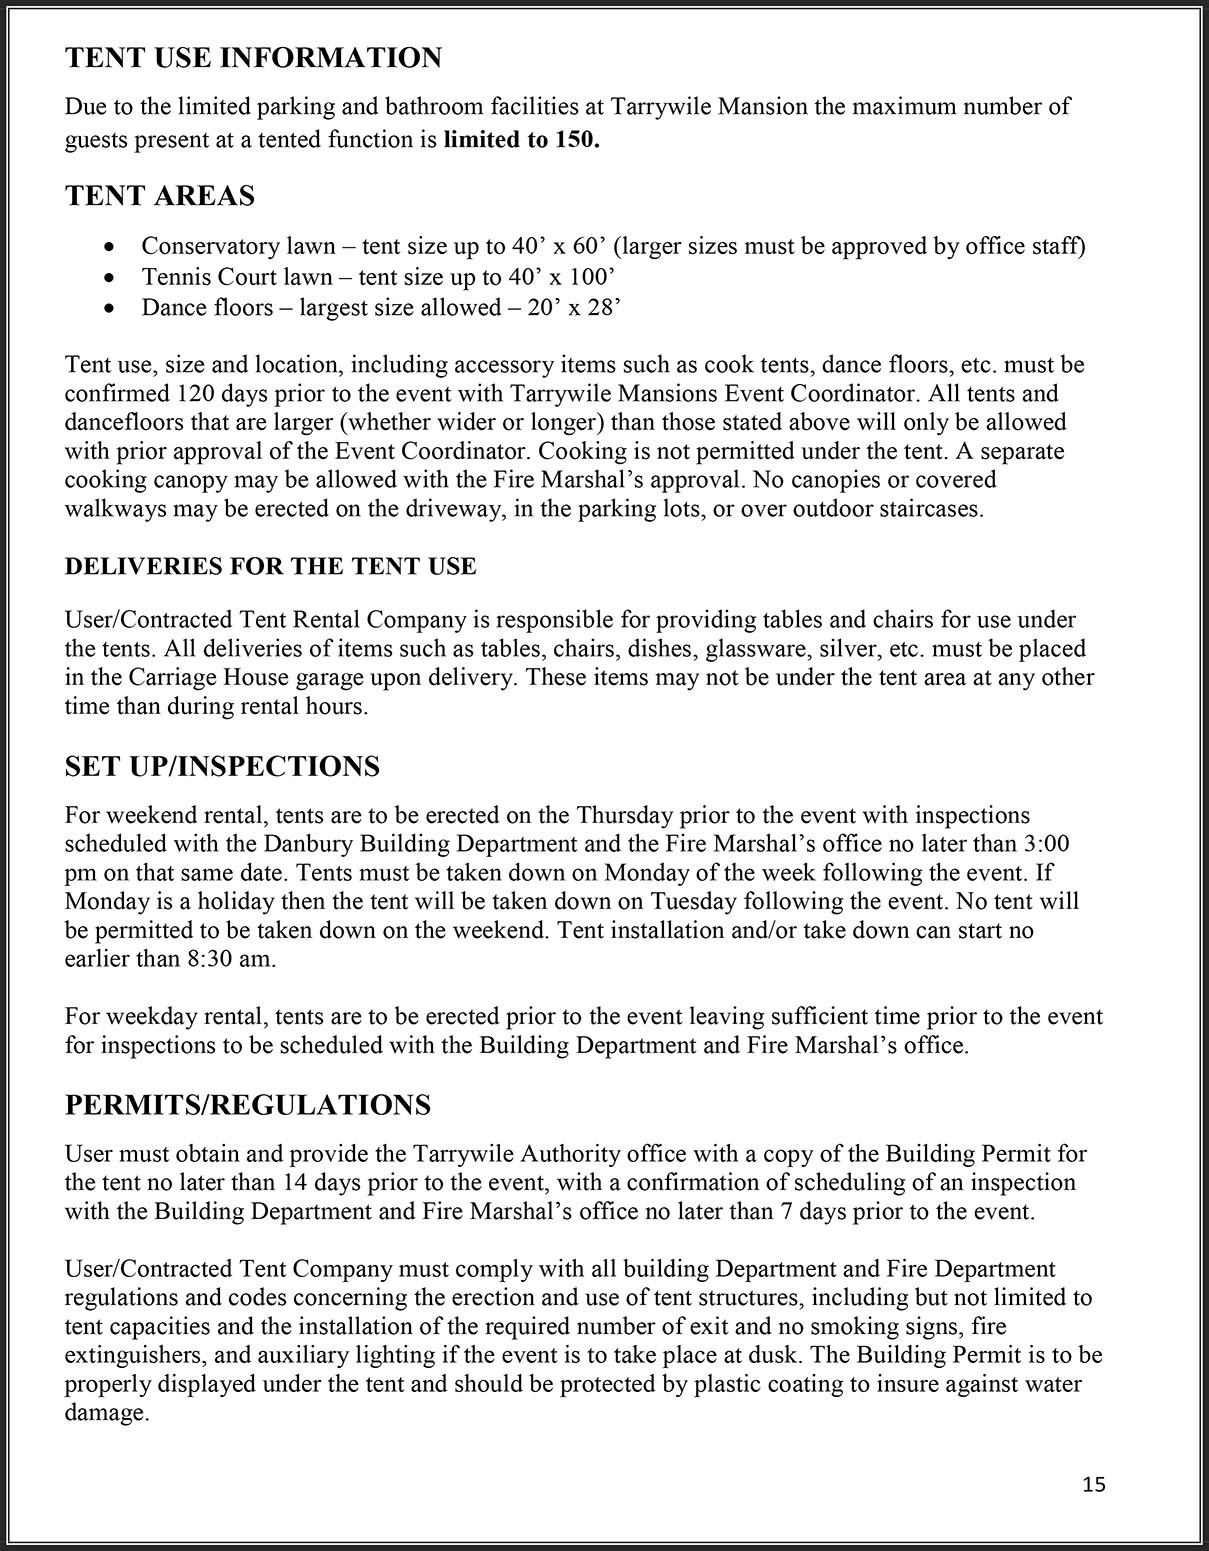 Tent Use Information pg 15